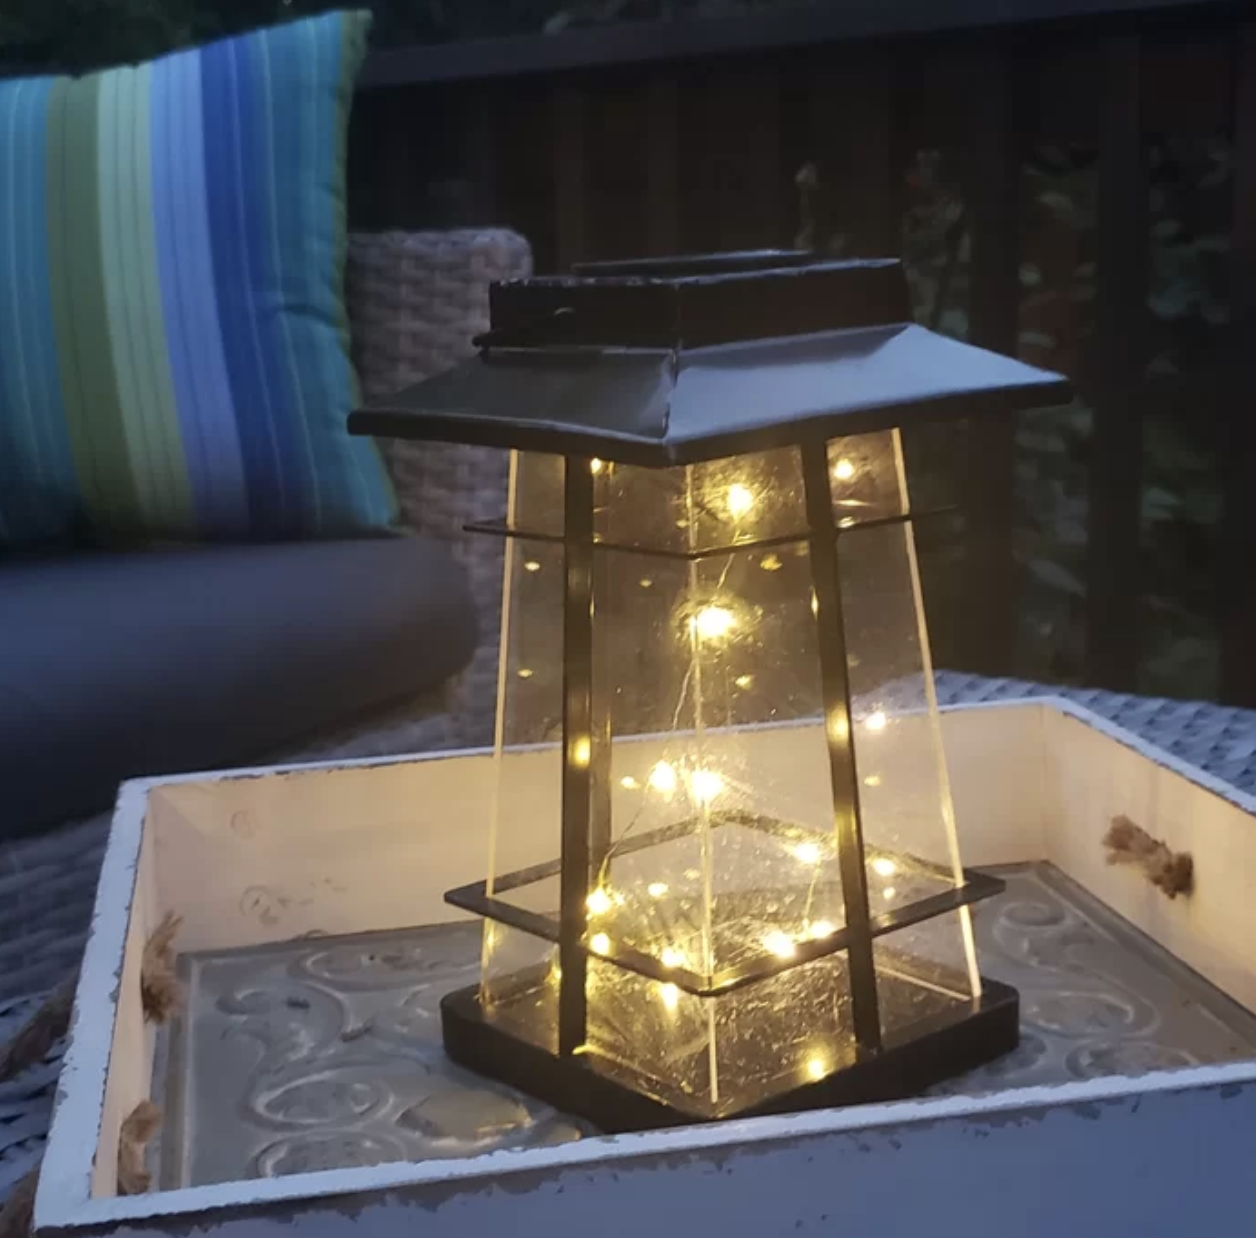 The lantern is iron and clear plastic and has fairy lights inside